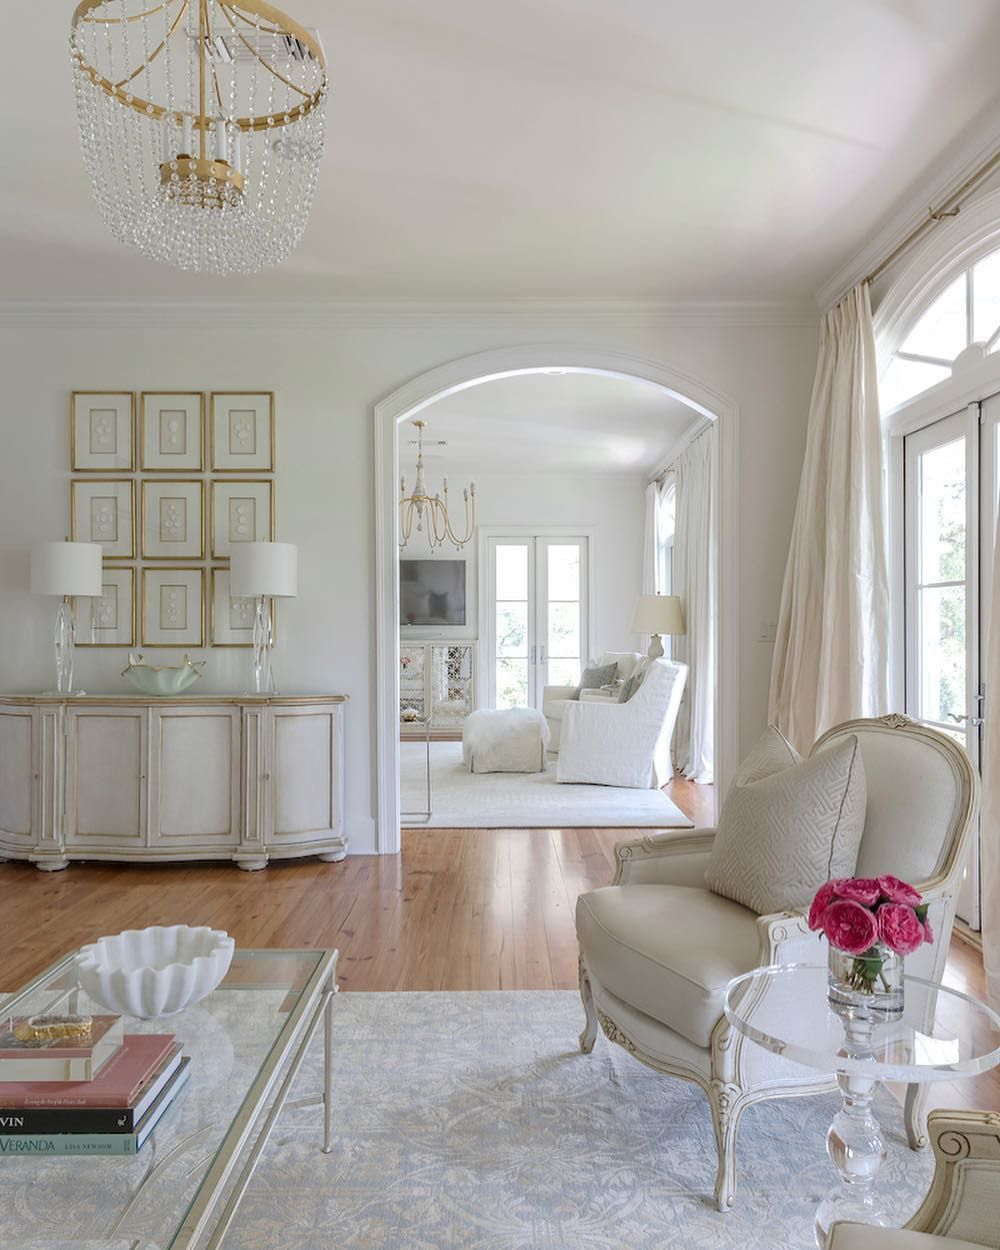 The French Mix Interior Design On Instagram Classic Is Stunning Elegant Interiors By Jennifer Dicerbo Elegant Interiors House Colors Elegant Interior Design